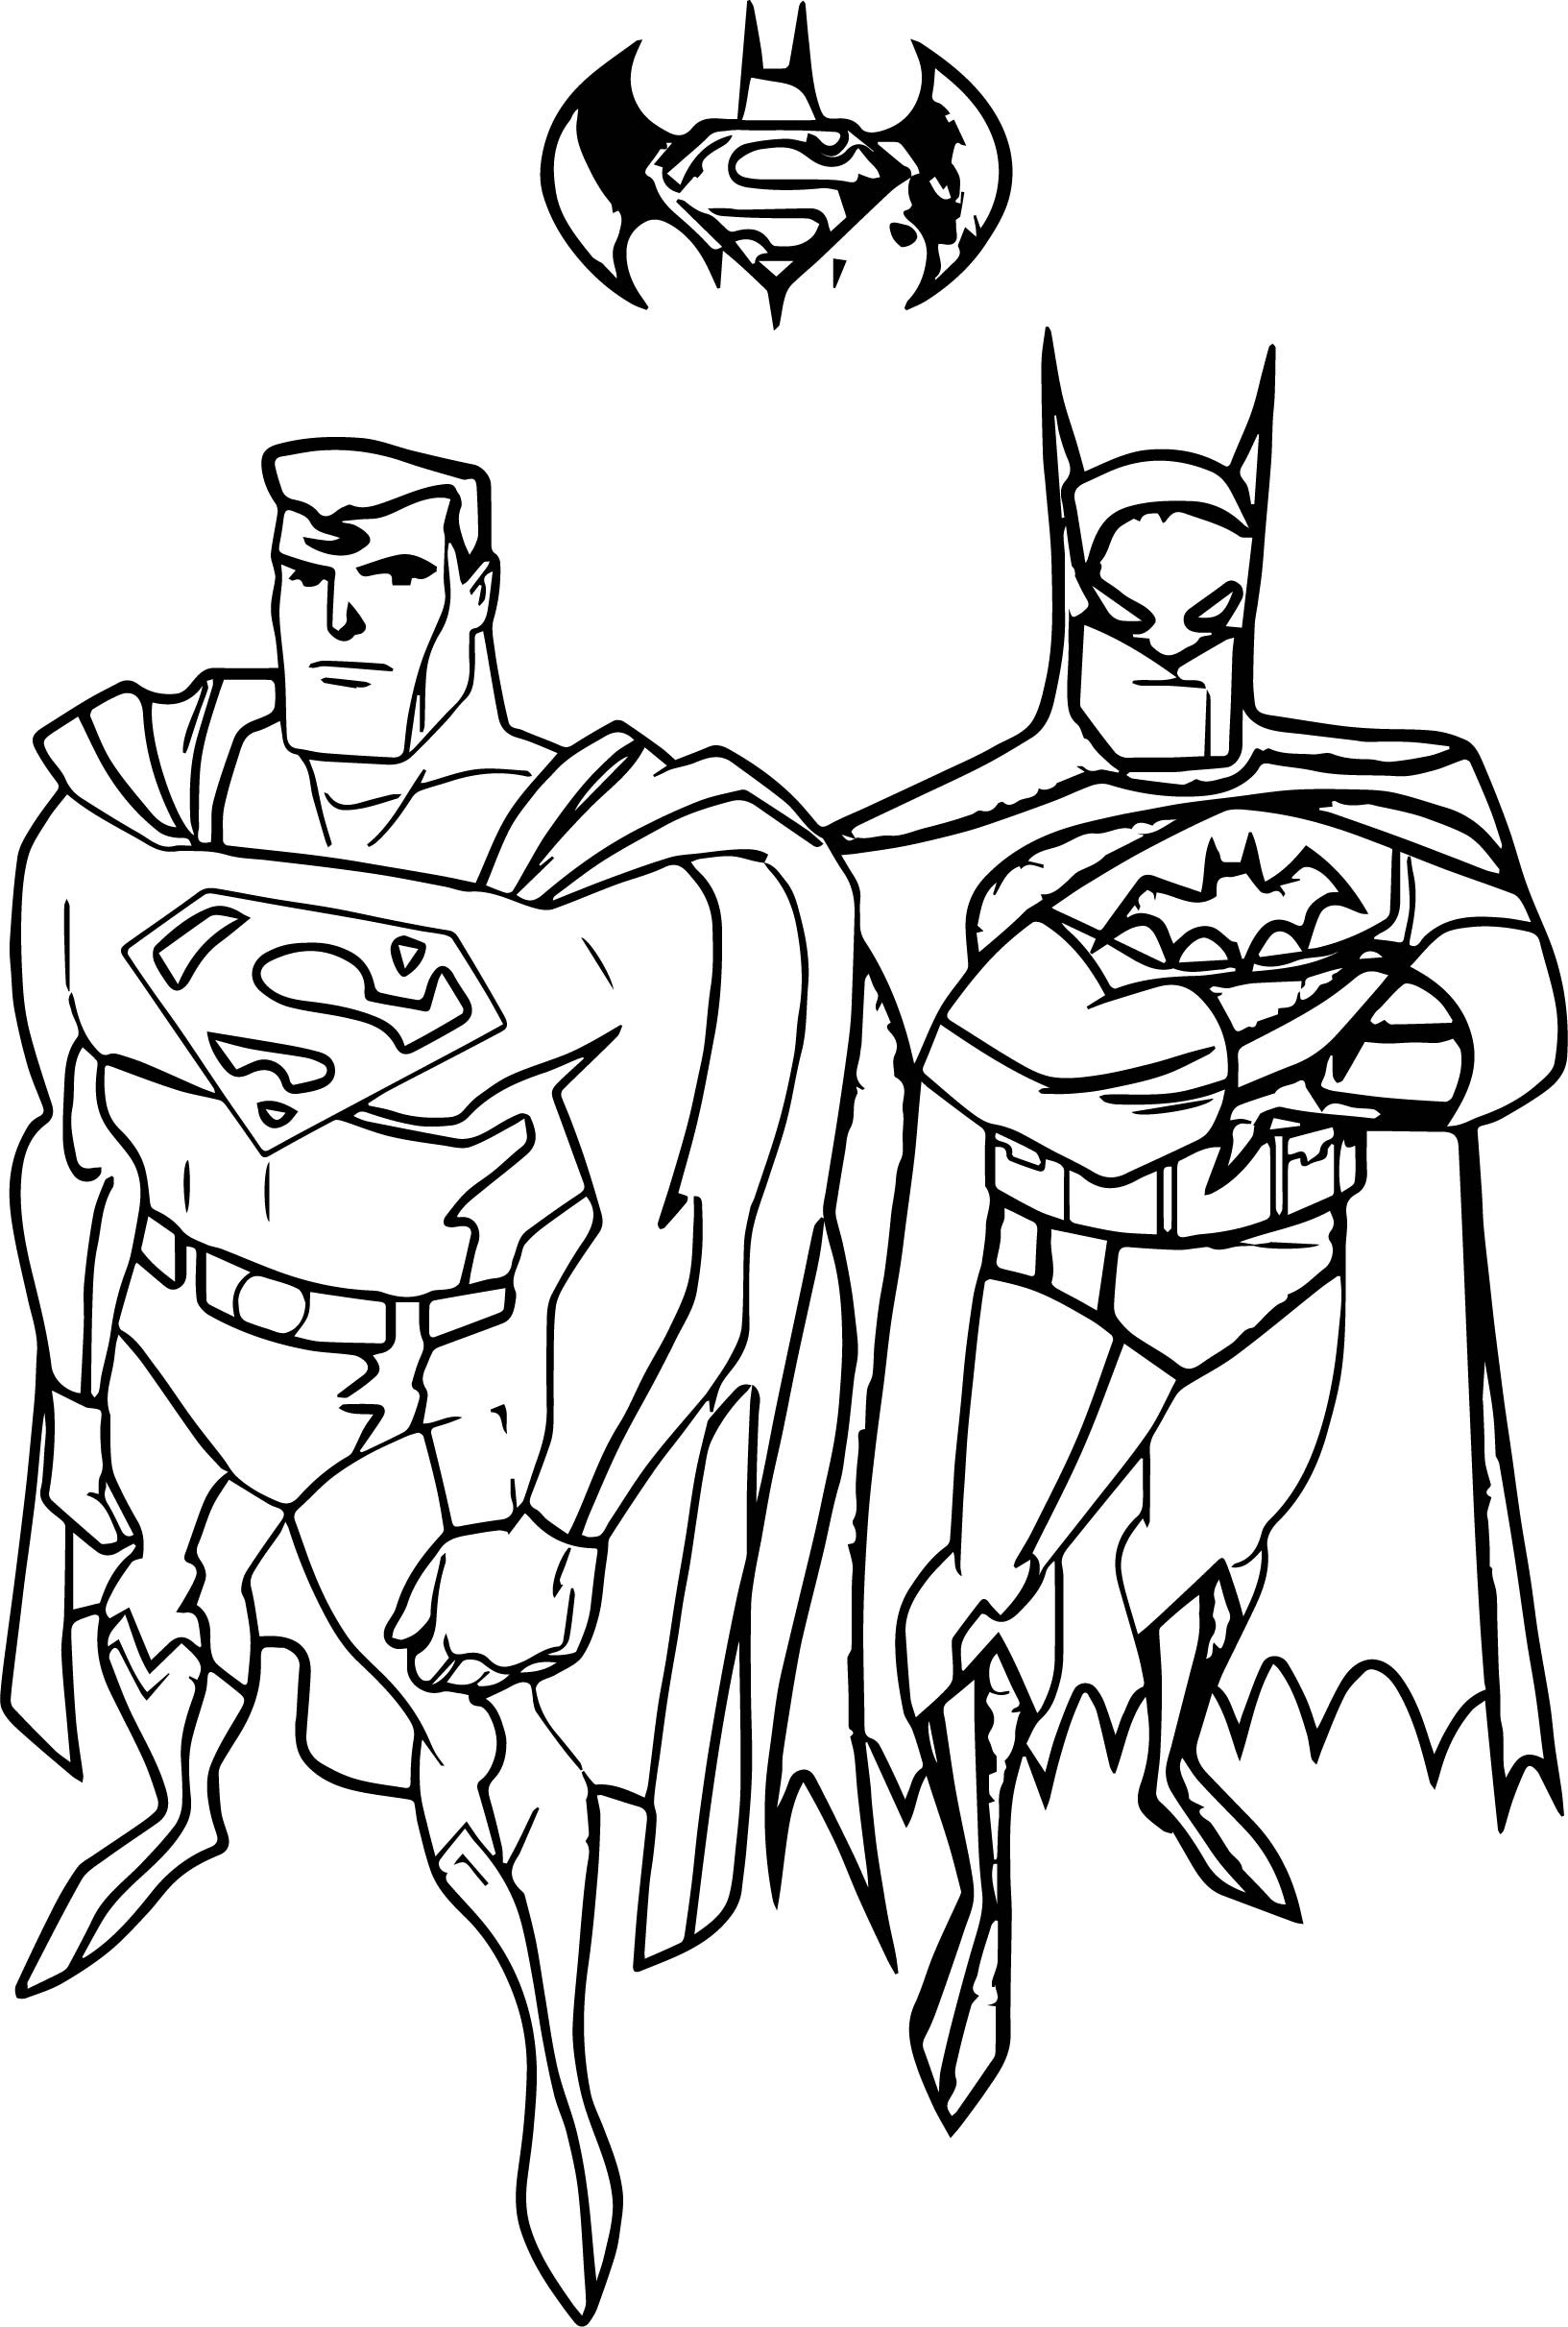 batman superman coloring pages free printable superman coloring pages for kids cool2bkids batman superman coloring pages